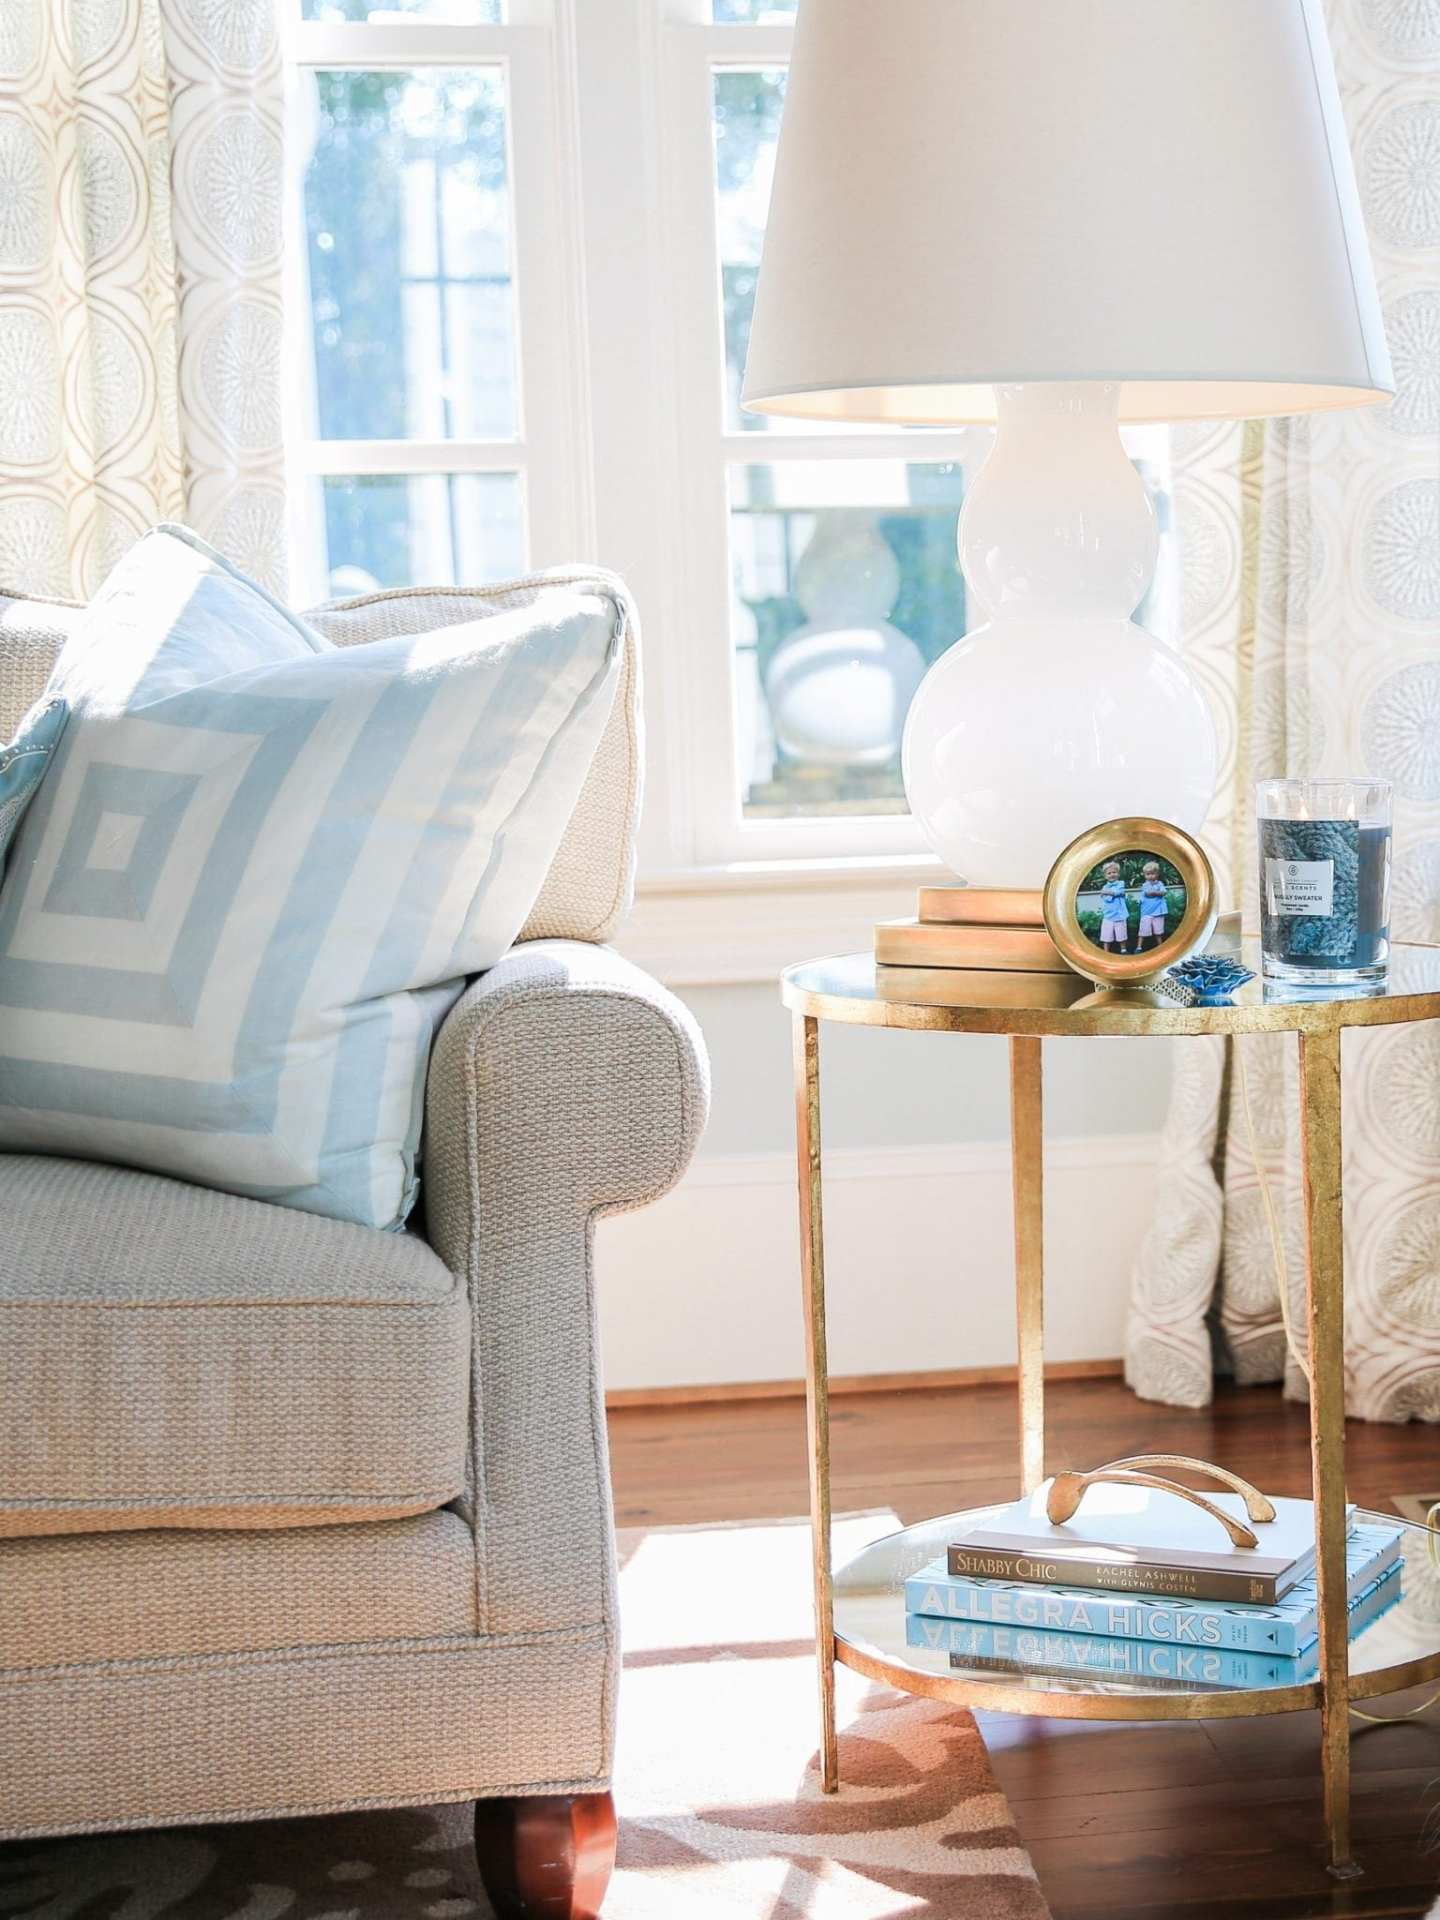 Blue and beige family room home decor with Chesapeake Bay Candle on gold end table.